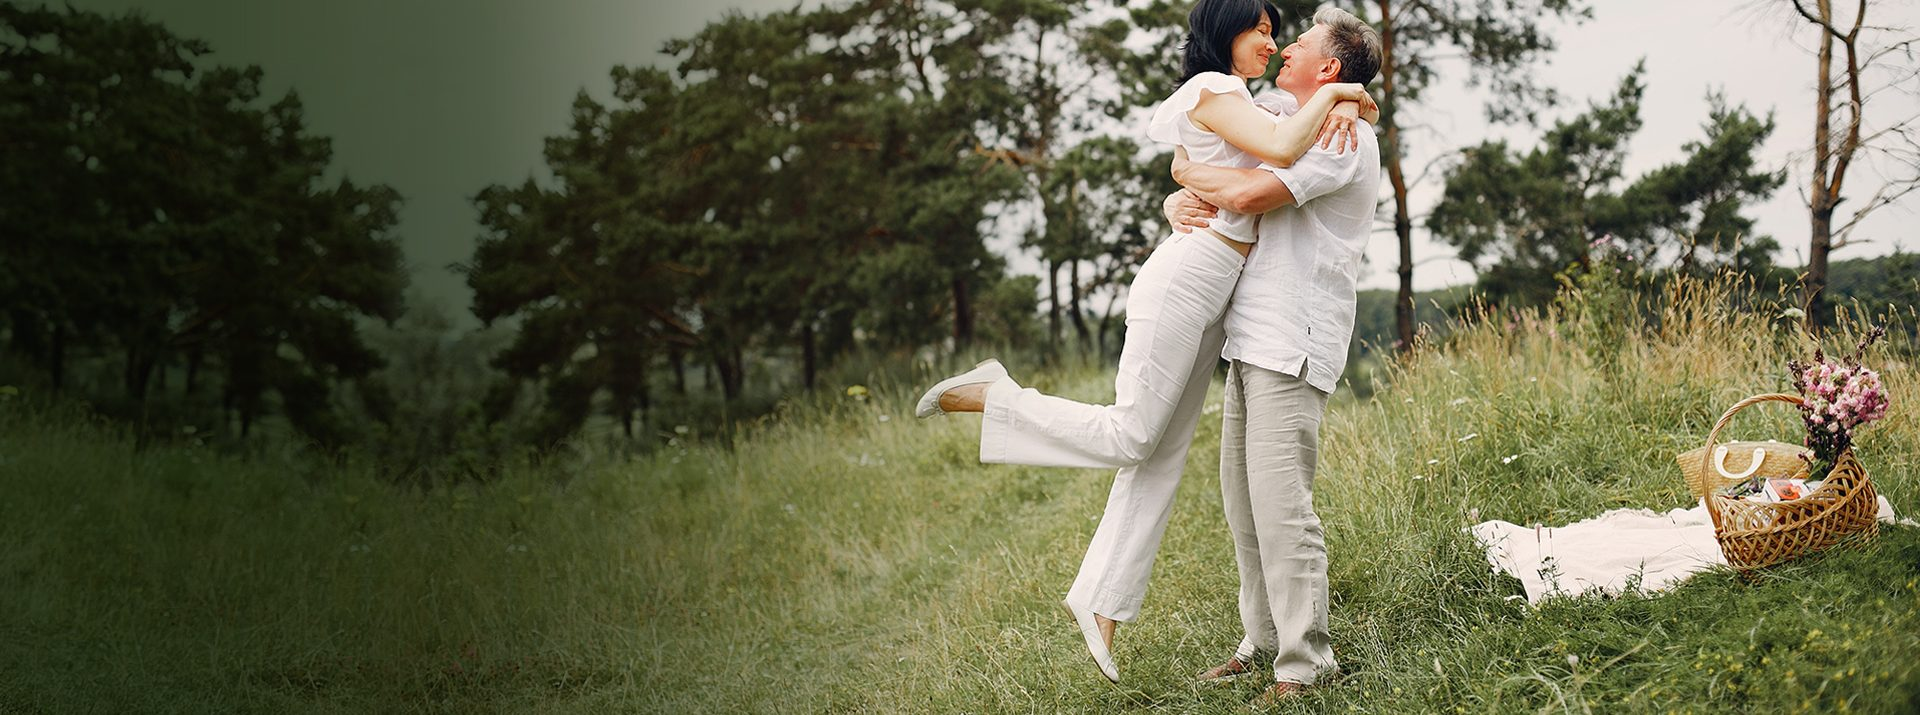 Happy Young couple on the field in spring